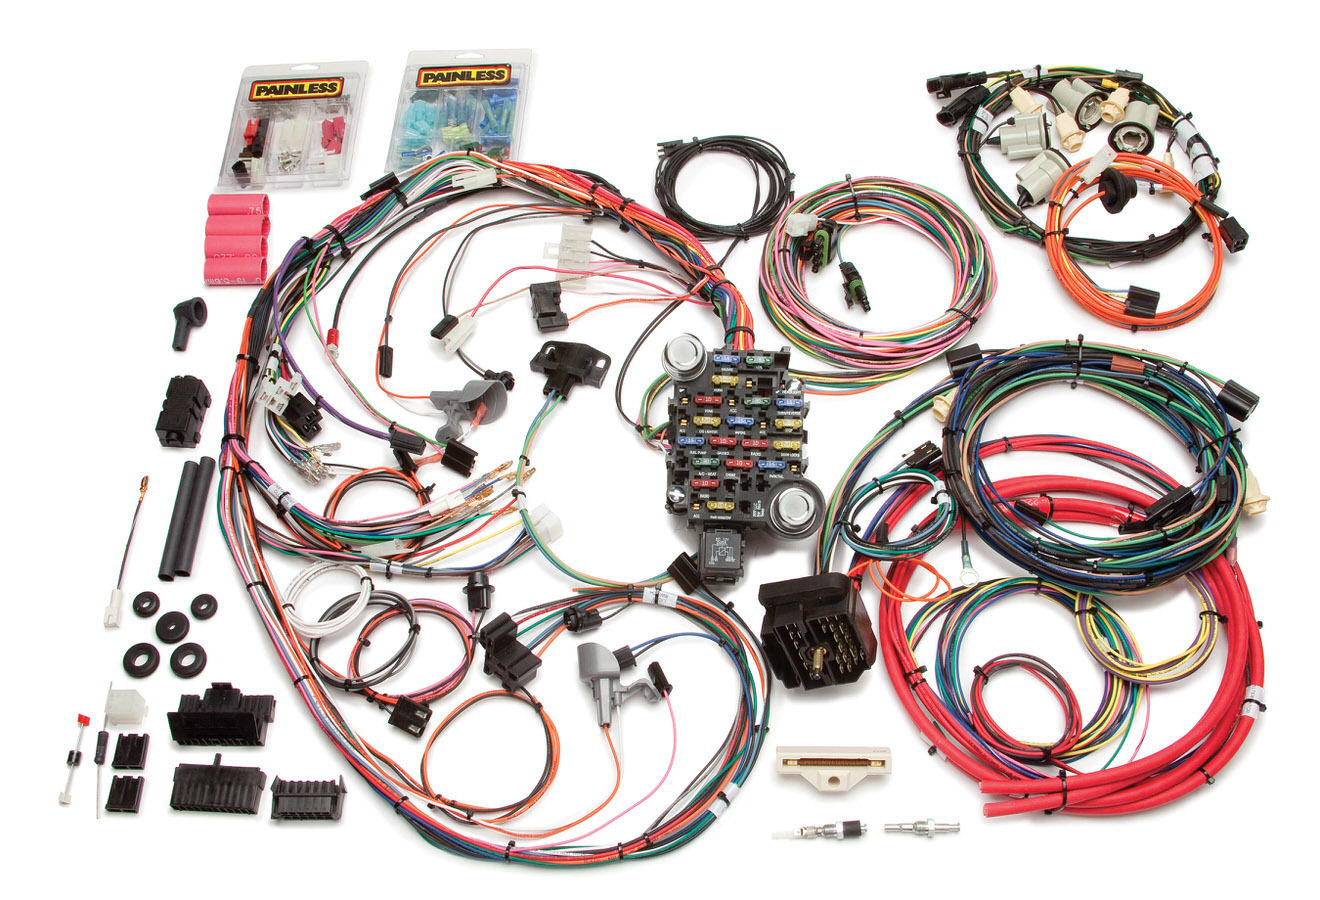 Painless Wiring 20113 Car Wiring Harness, Direct Fit, Complete, 26 Circuit, Chevy Camaro 1974-77, Kit